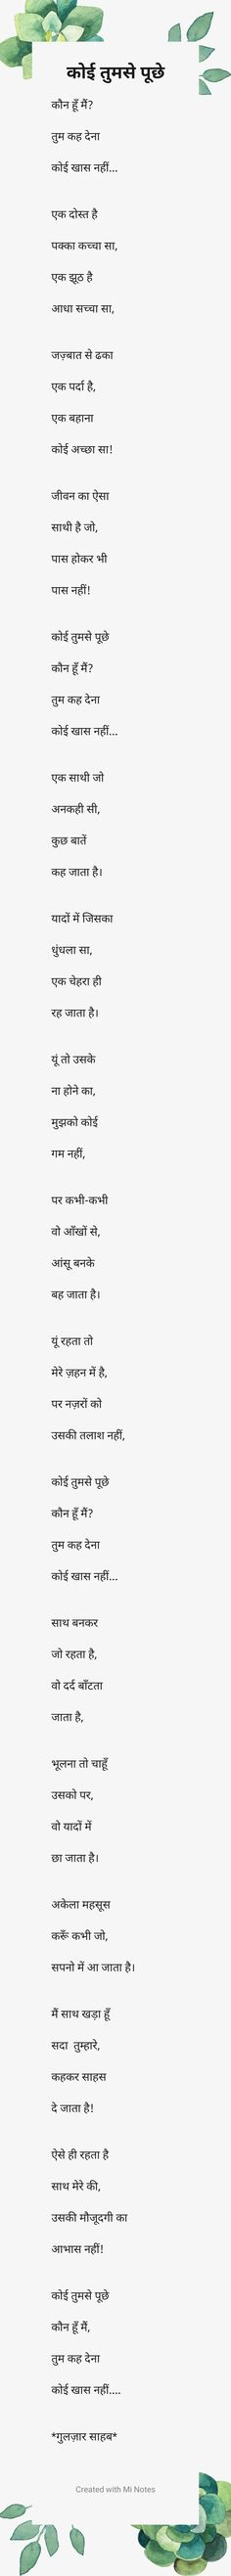 most beautiful poetry simple amazing. Hindi Quotes Images, Shyari Quotes, Motivational Picture Quotes, Hindi Quotes On Life, Hurt Quotes, Friendship Quotes, Qoutes, Funny Quotes, Inspirational Quotes